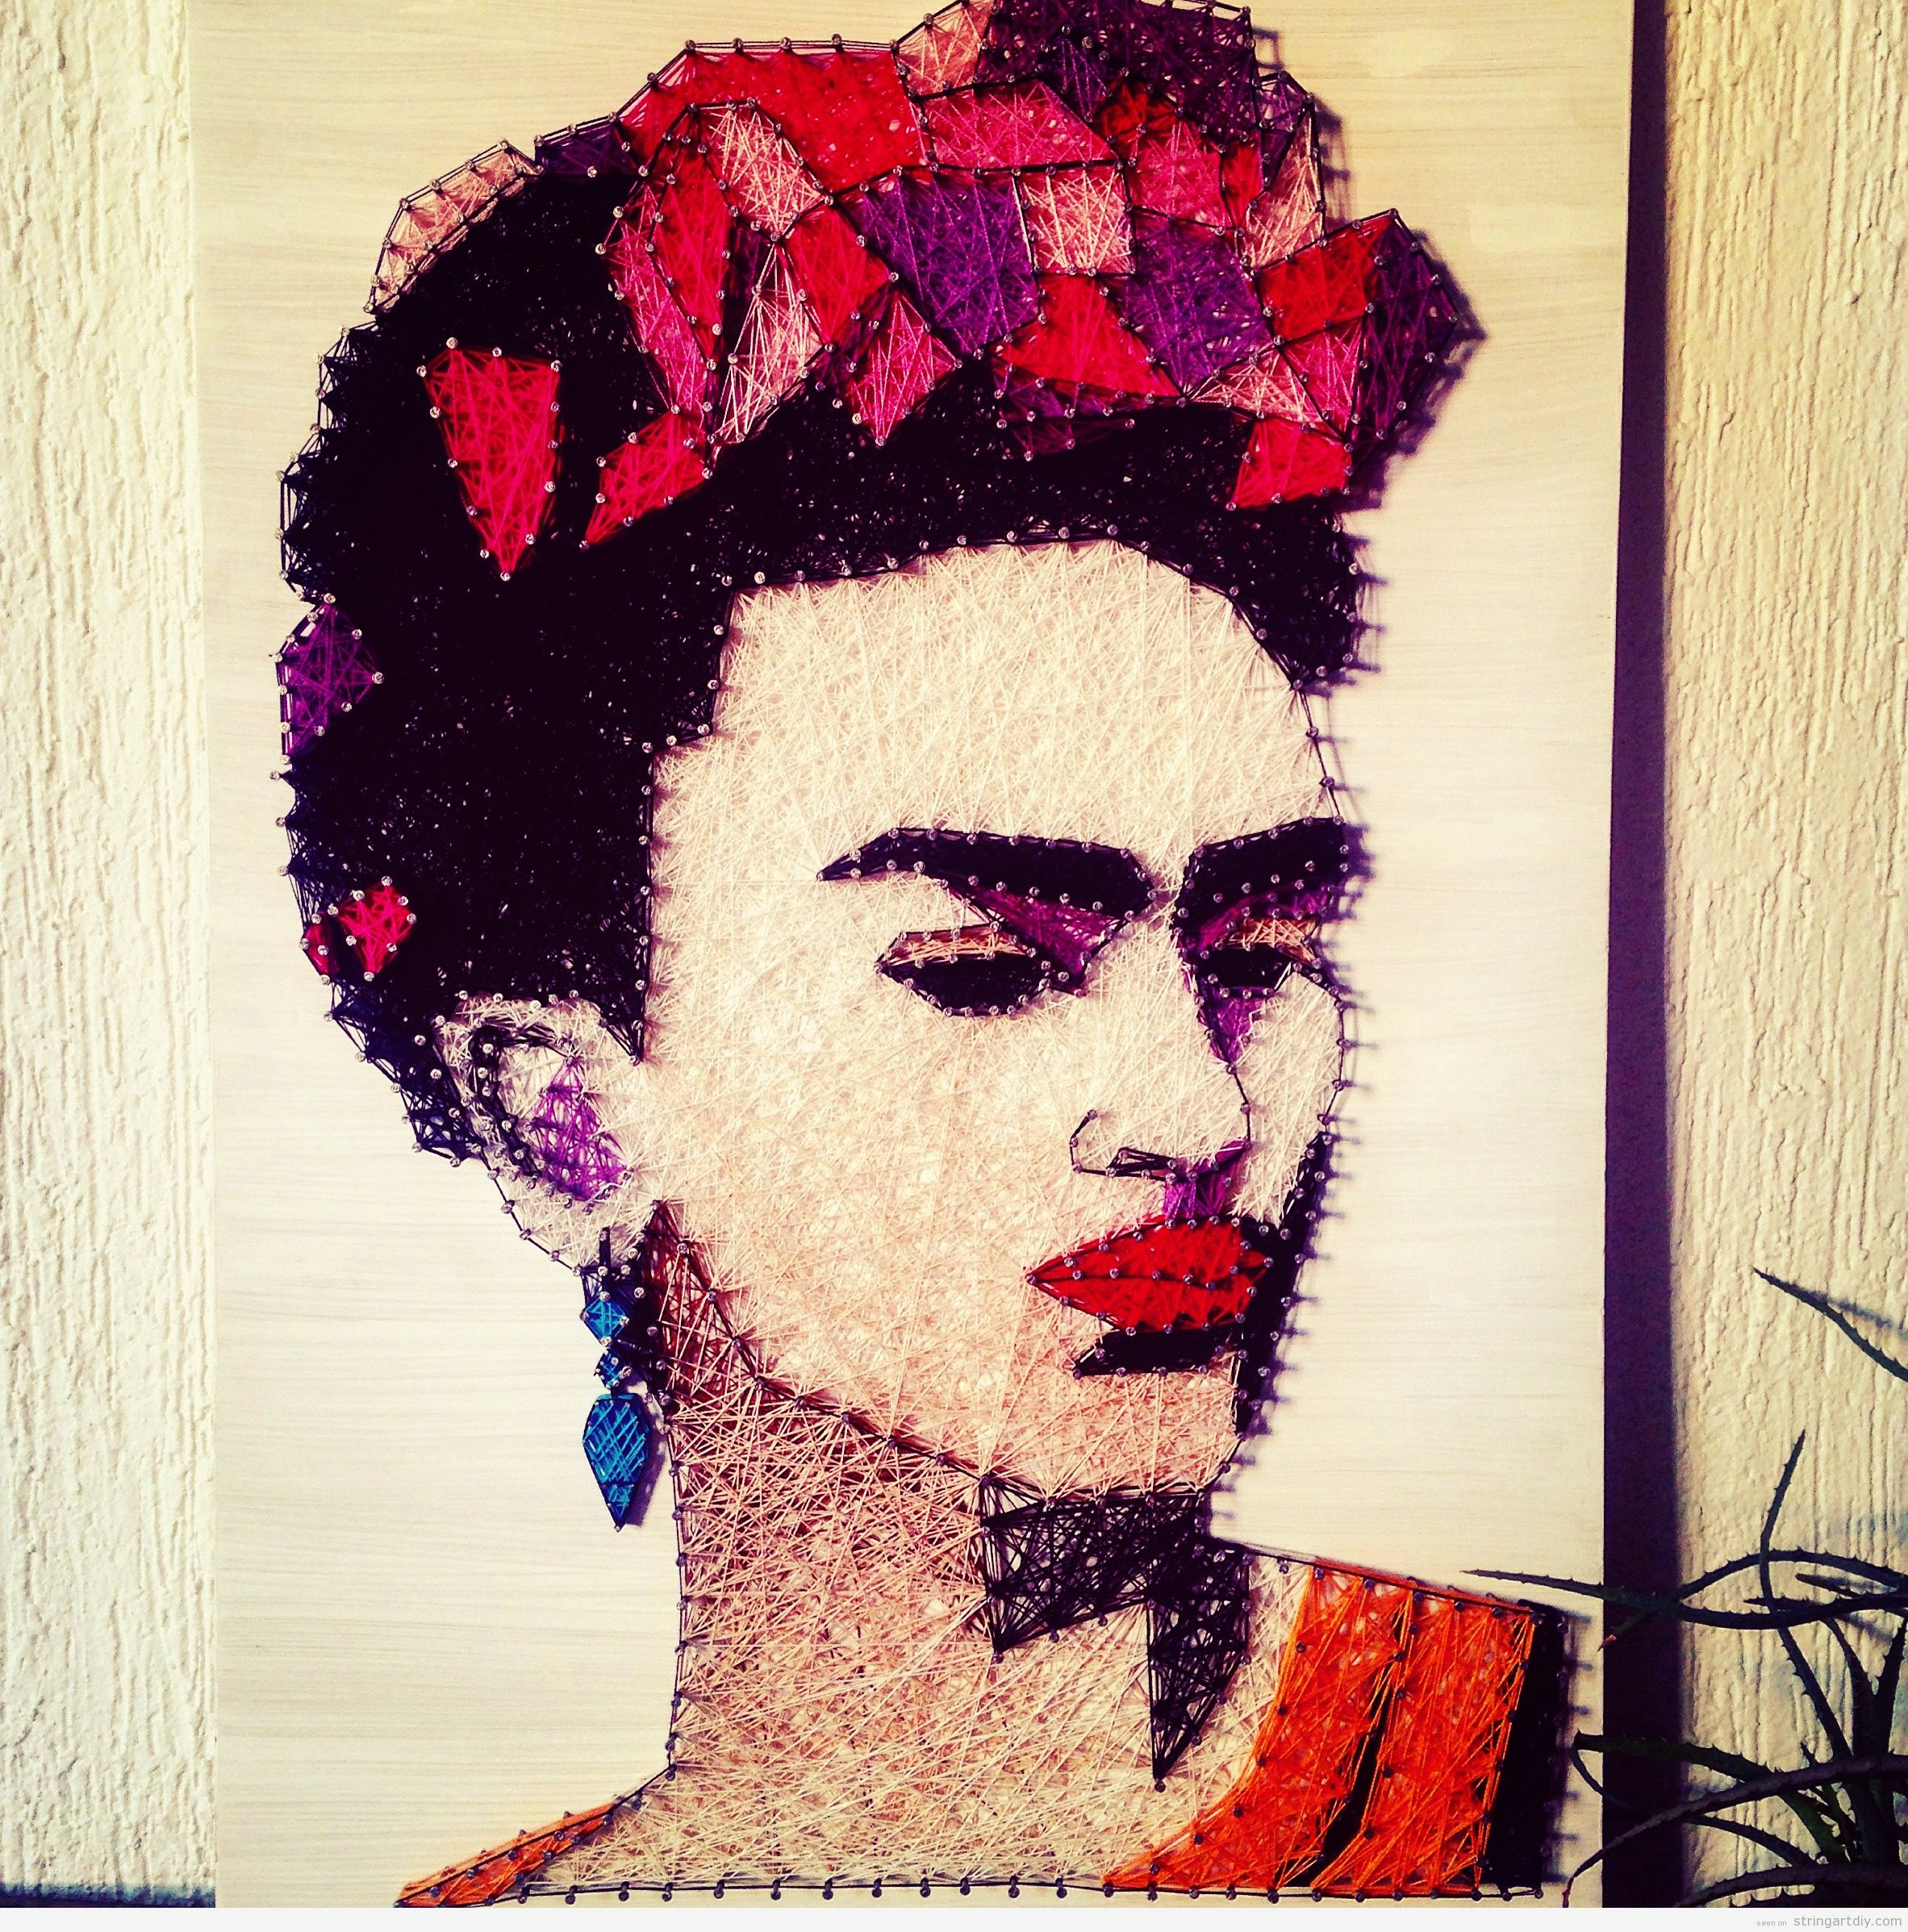 frida kahlo art Frida kahlo fine art reproductions, oil painting reproductions - art for sale at galerie dada.